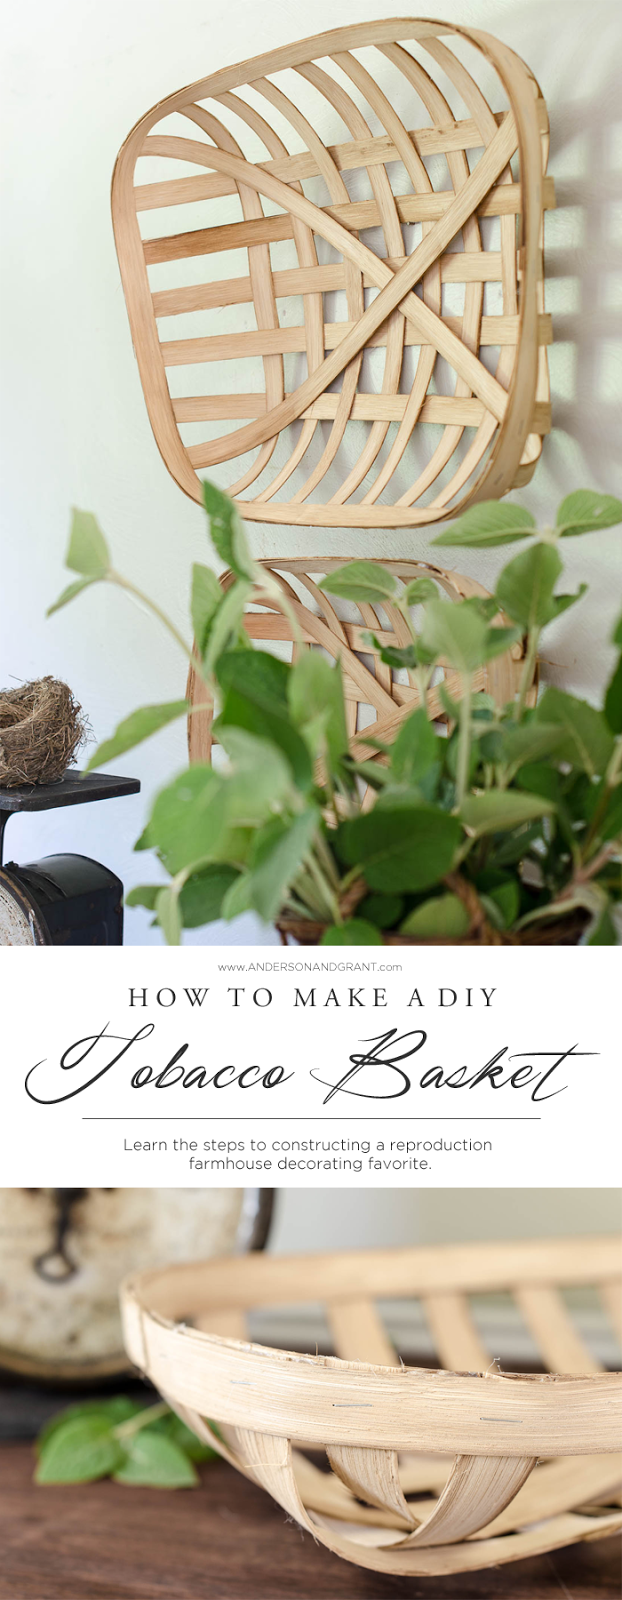 Do you love the look of old rustic tobacco baskets, but don't want to pay the price?  Check out this tutorial and find out how to DIY a pair for less than $20.  |  www.andersonandgrant.com